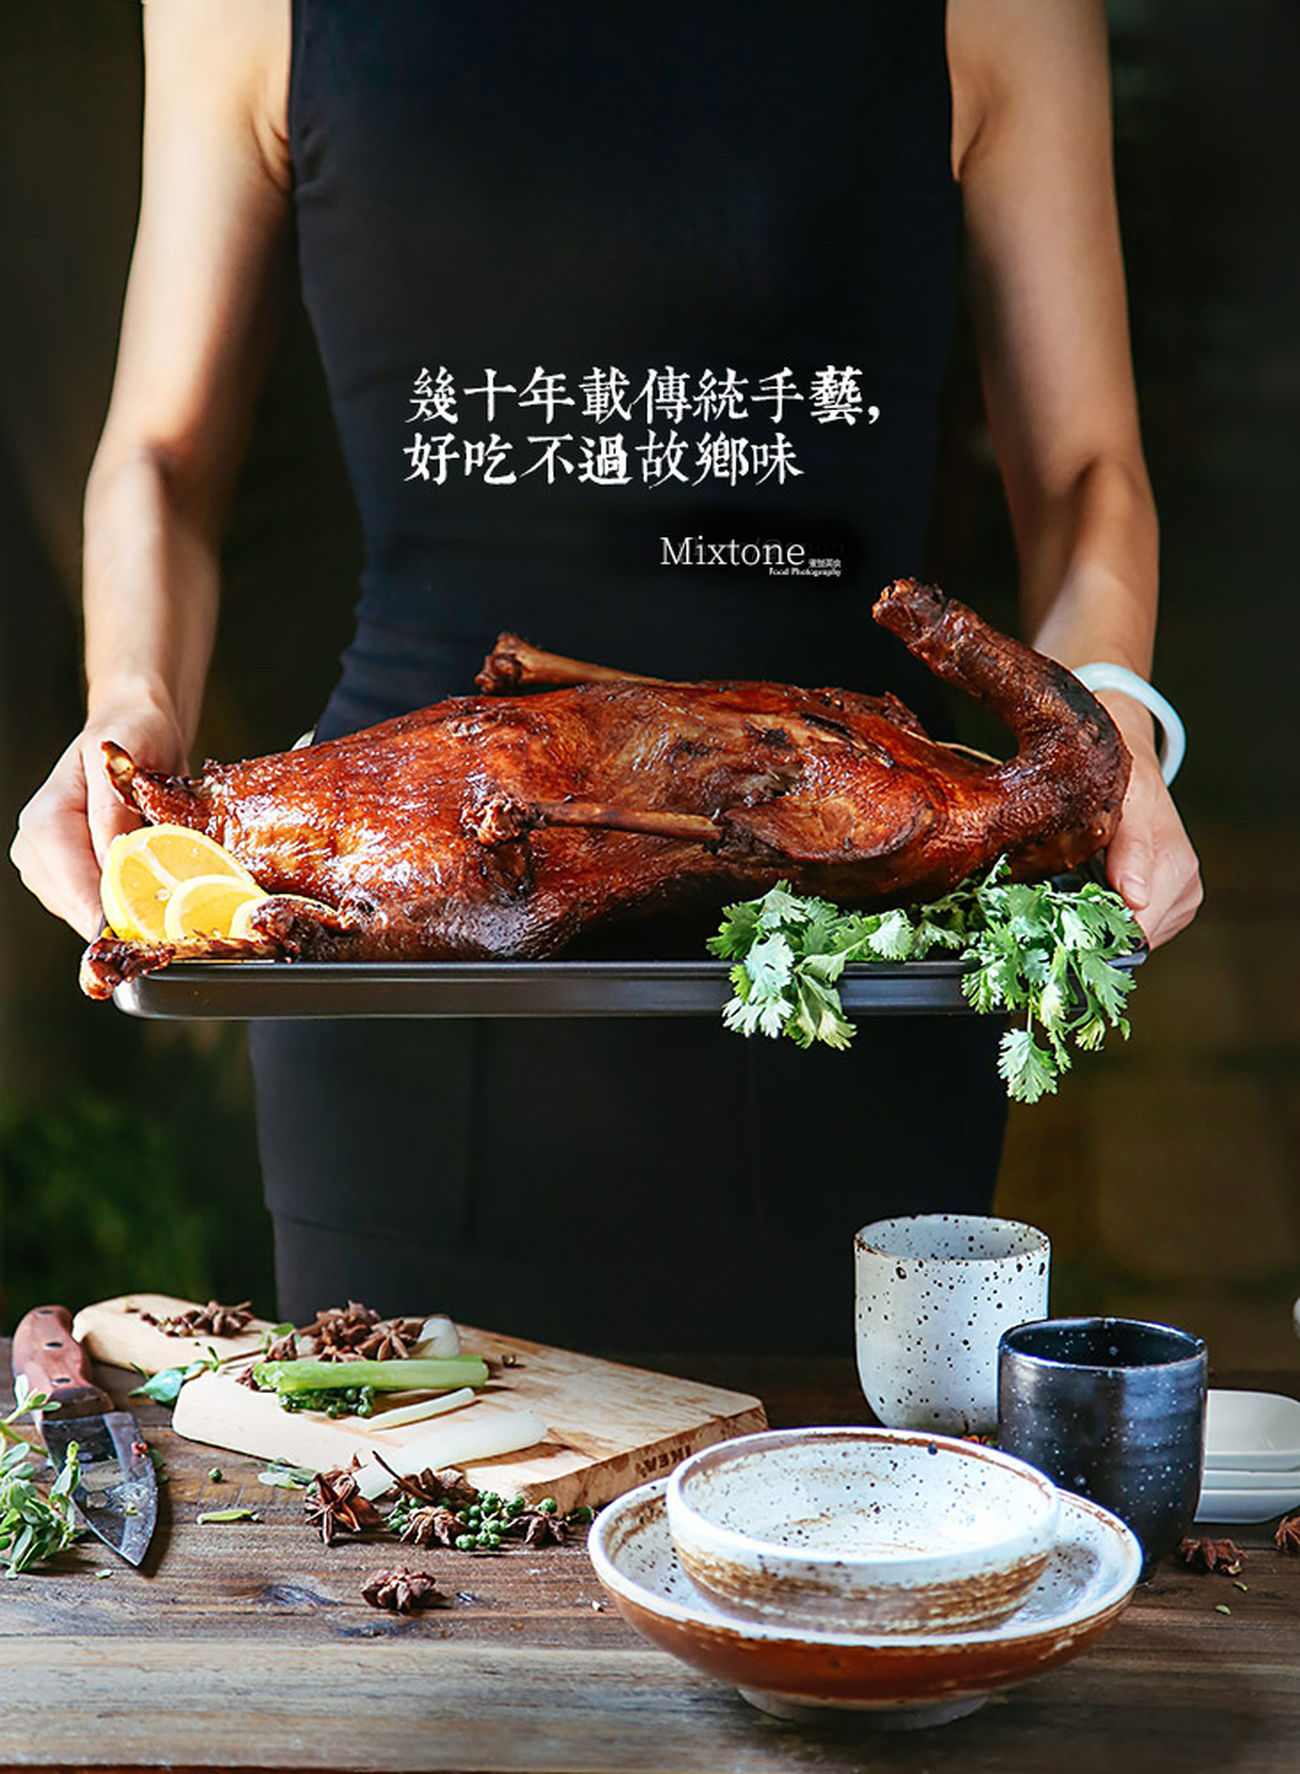 Spiced goose There are three decades of history of the traditional production of the bittern, a taste of homesickness Adult Close-up Day Food Food And Drink Freshness Holding Human Body Part Human Hand Indoors  One Person People Plate Real People Women